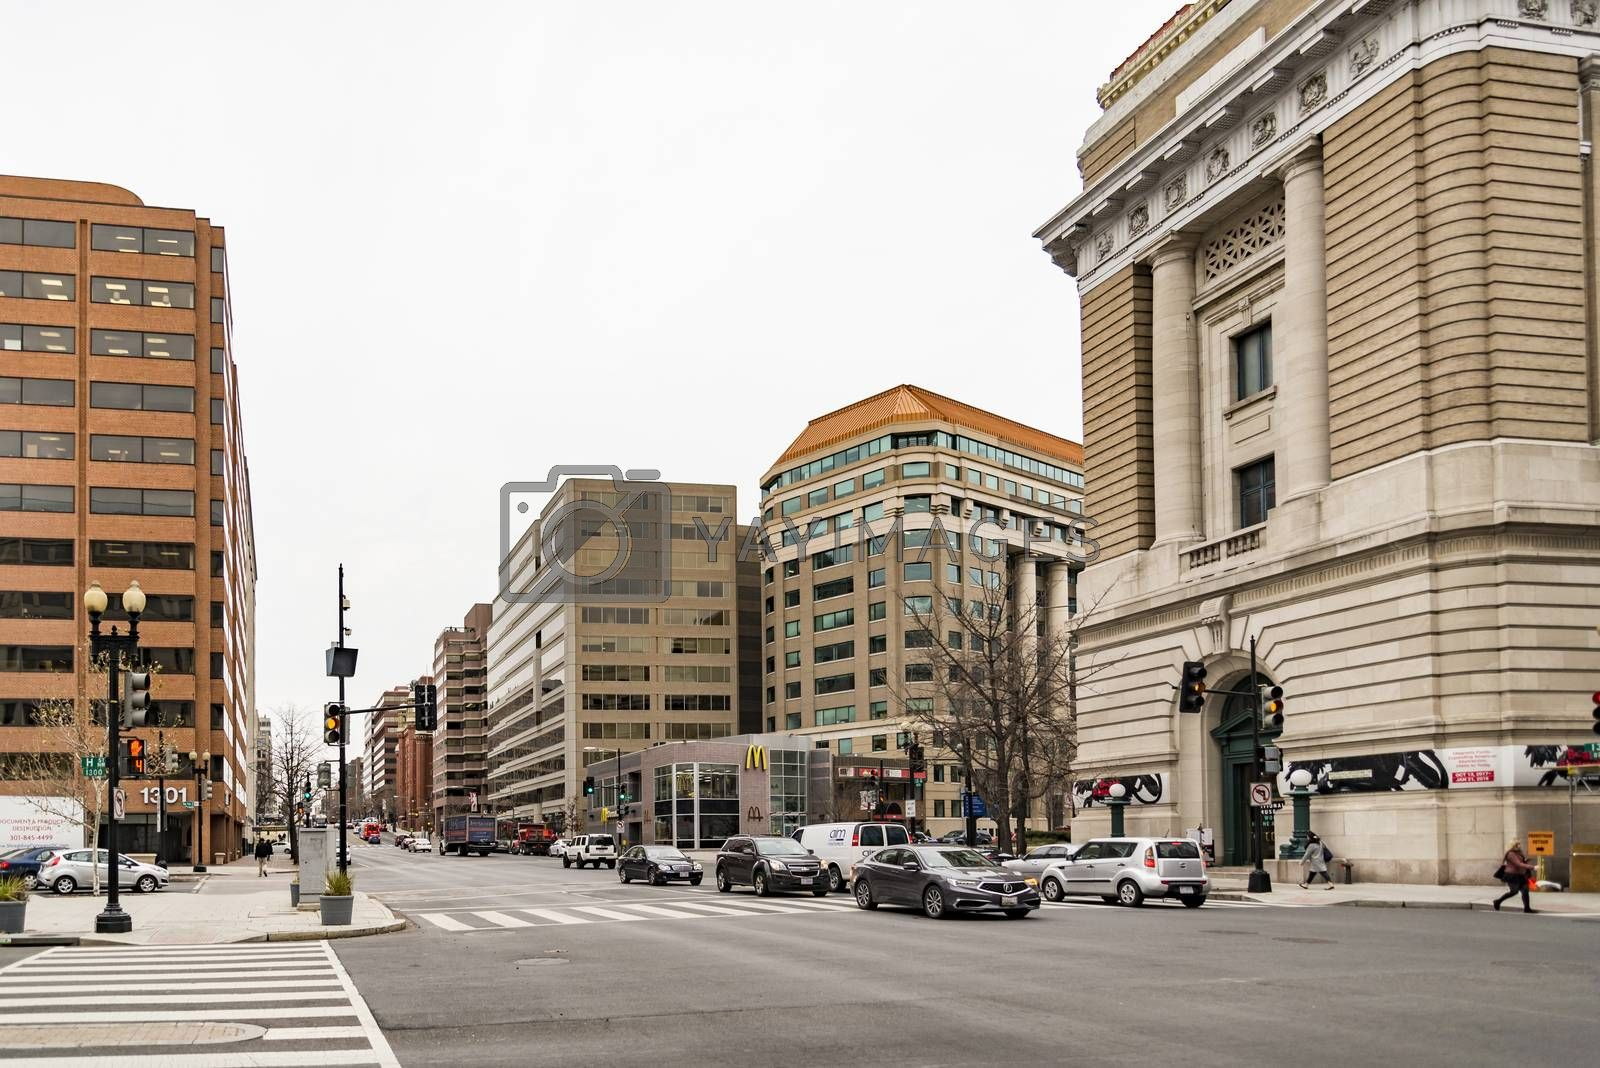 WASHINGTON D.C., USA - DECEMBER 20: Streets and architecture of Washington DC early morning. Washington is the capital of the United States on December 20, 2017, in Washington DC